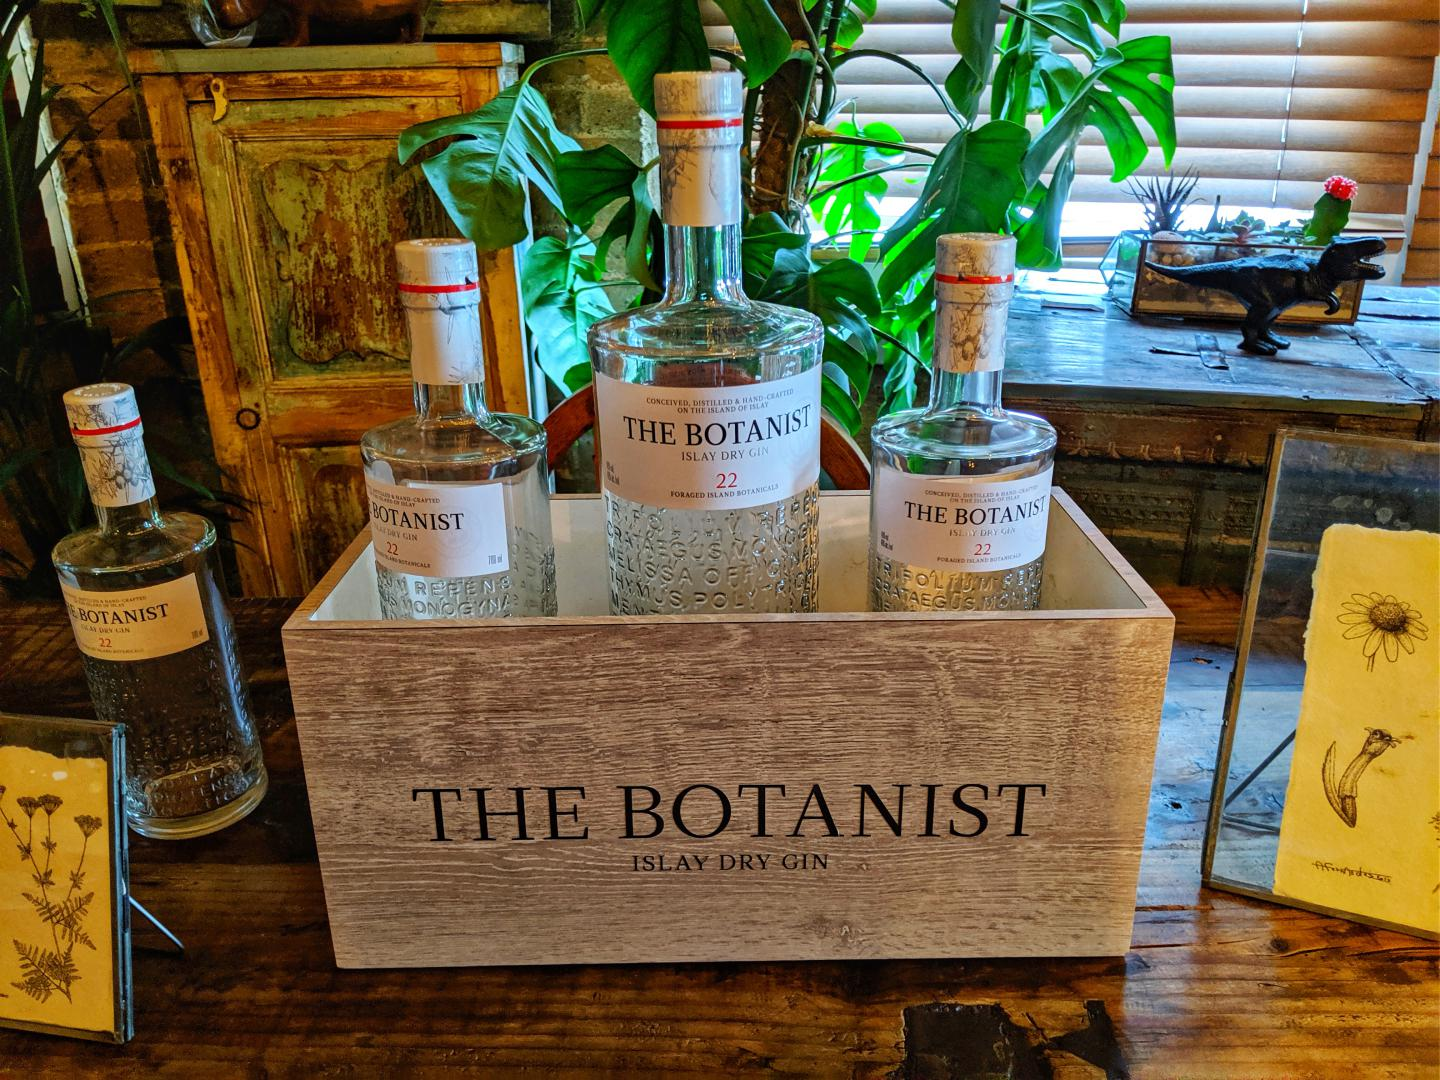 Botanist Gin sitting on a table